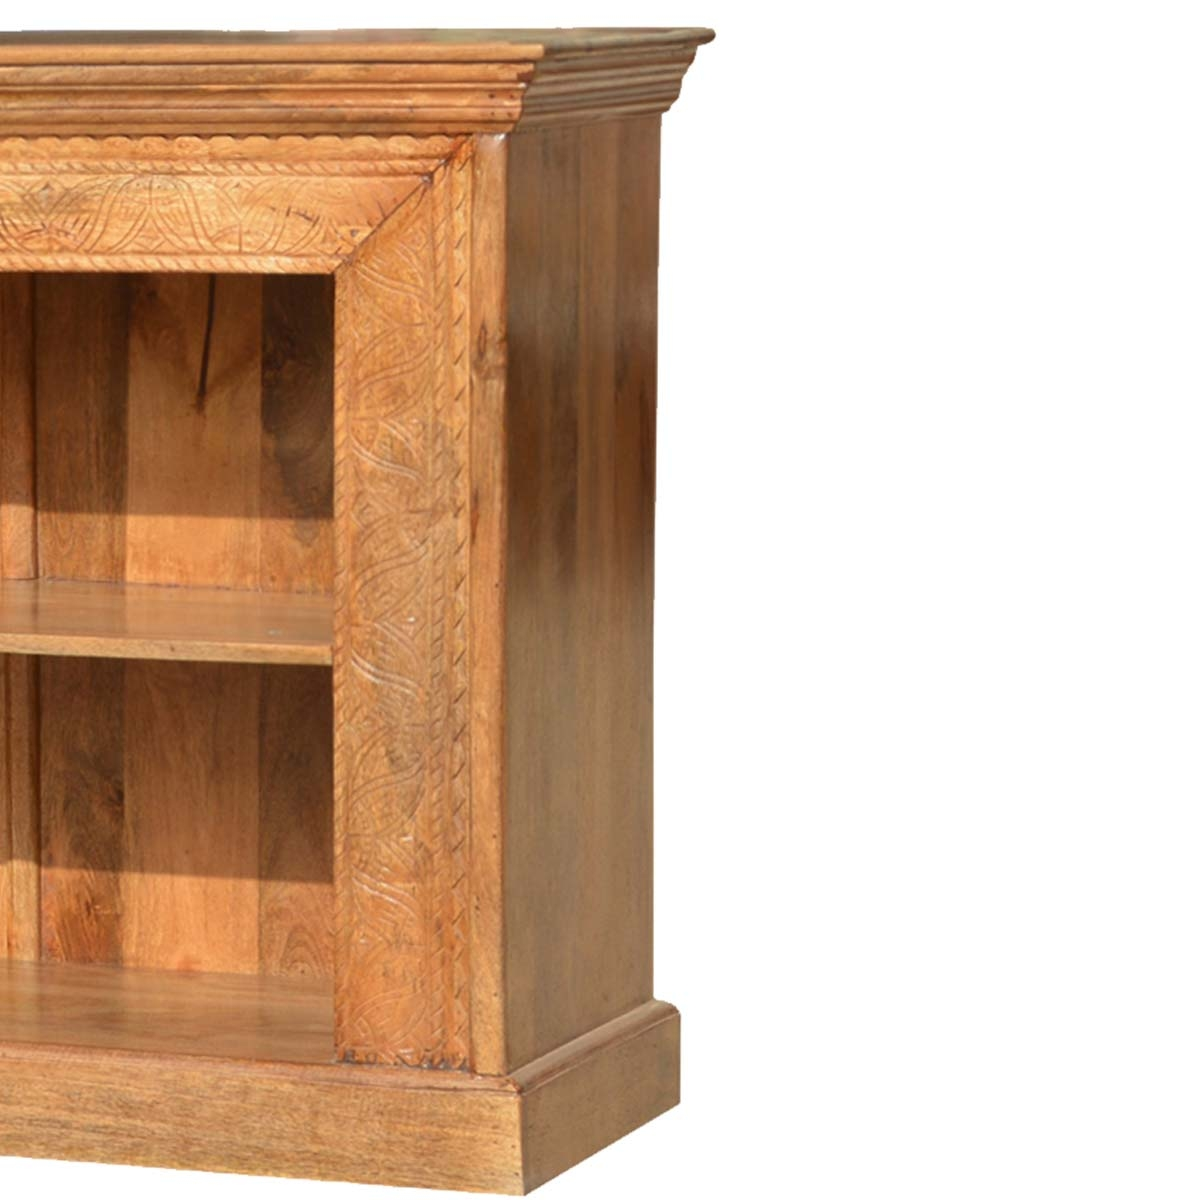 Large Hand Carved Solid Wood Bookcase 150 Long Tv Stand Media Pertaining To Large Solid Wood Bookcase (View 10 of 15)